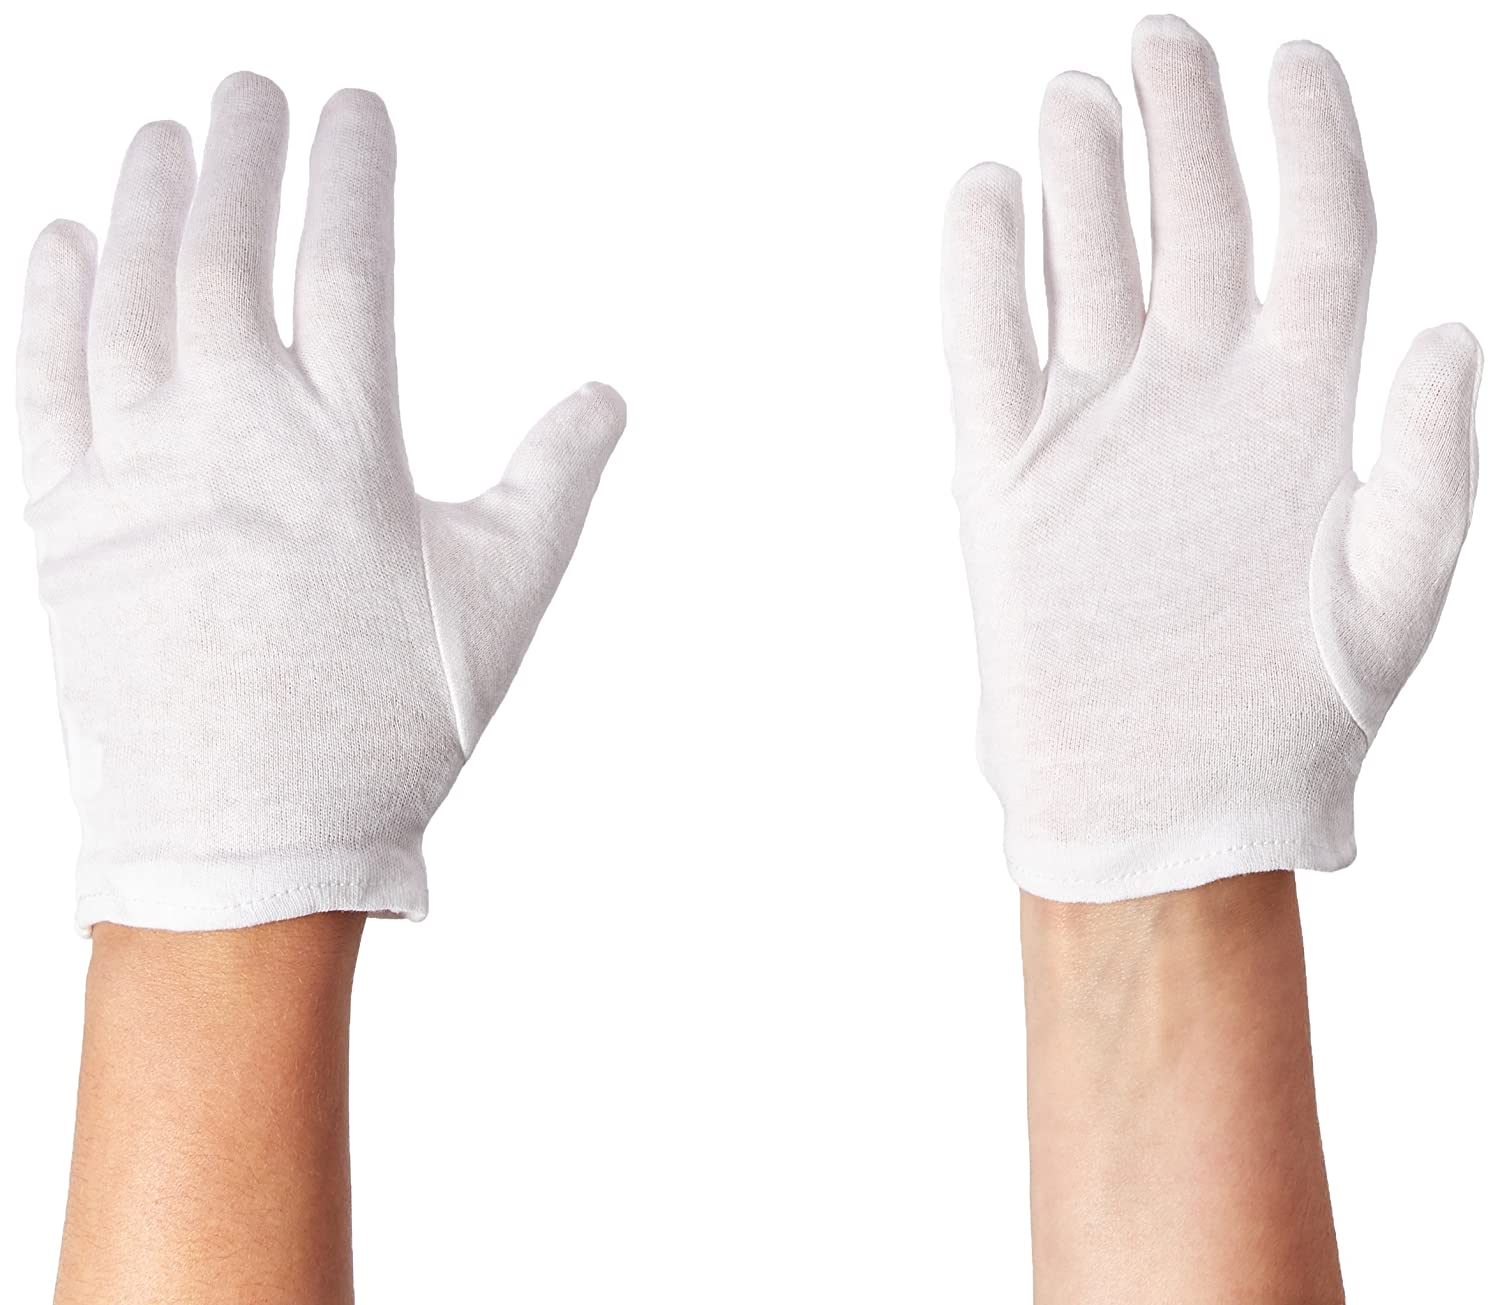 Dermatological Cotton Gloves-Ladies, Small, Cara 81-4 Pairs Everready First Aid